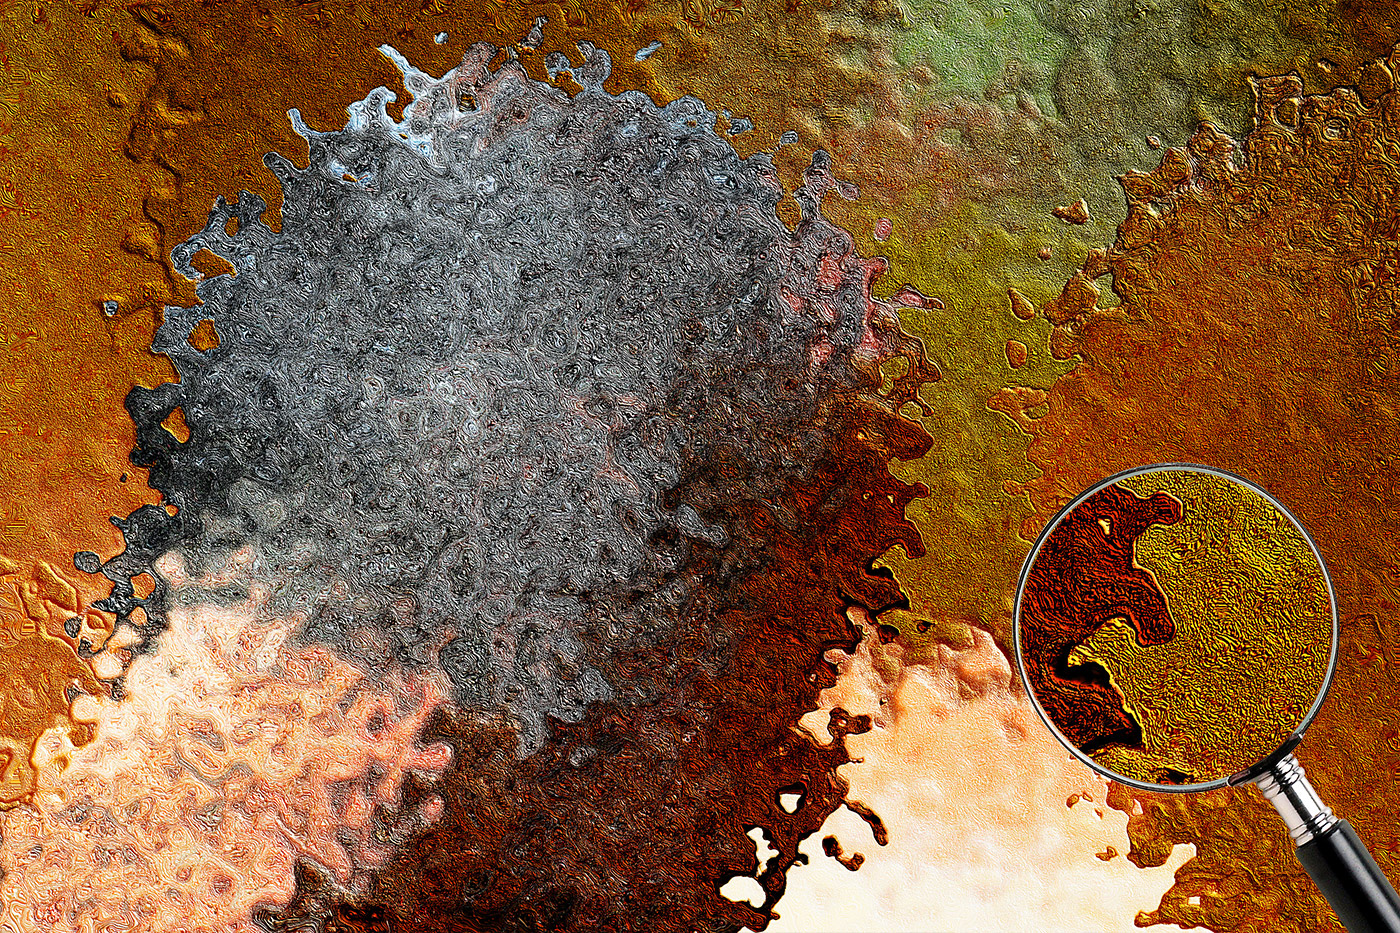 Artistrica_Magnifying_GlassIMG_0466mAr_2_1400